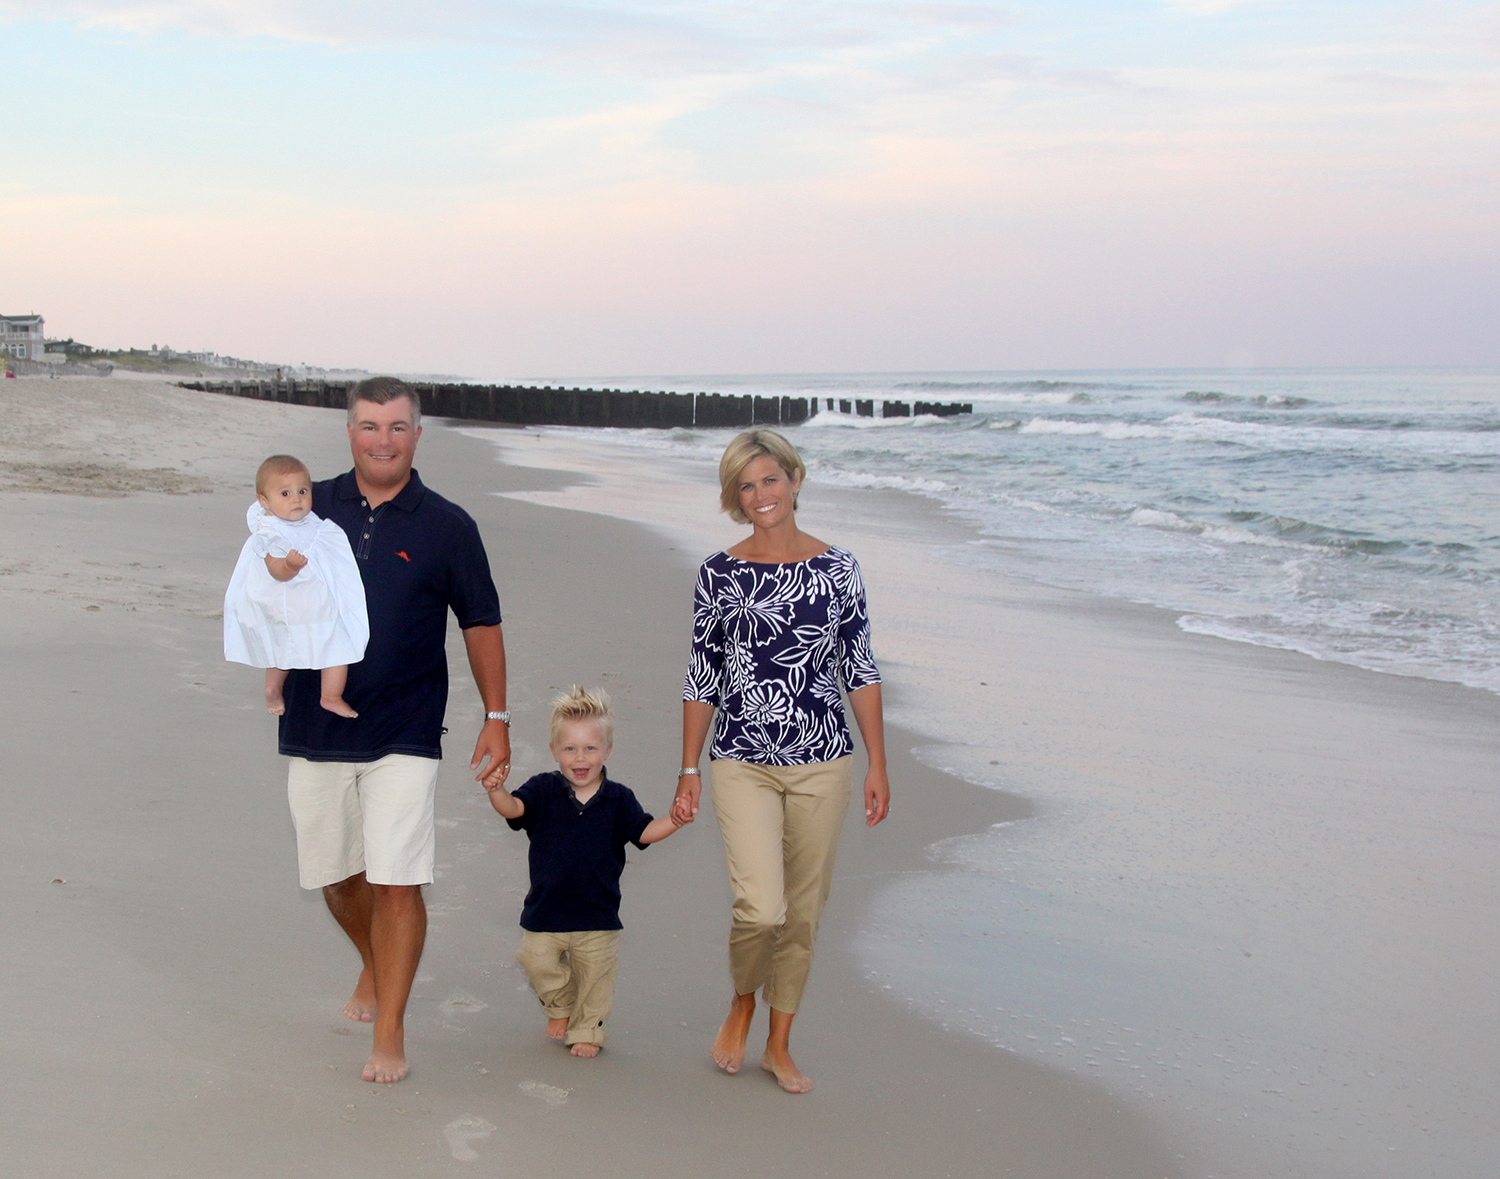 Take A Look At Some Images From Session In Lbi To Find Out More Information About My Family Portrait Photography Contact Me 800 757 3491 Or Email